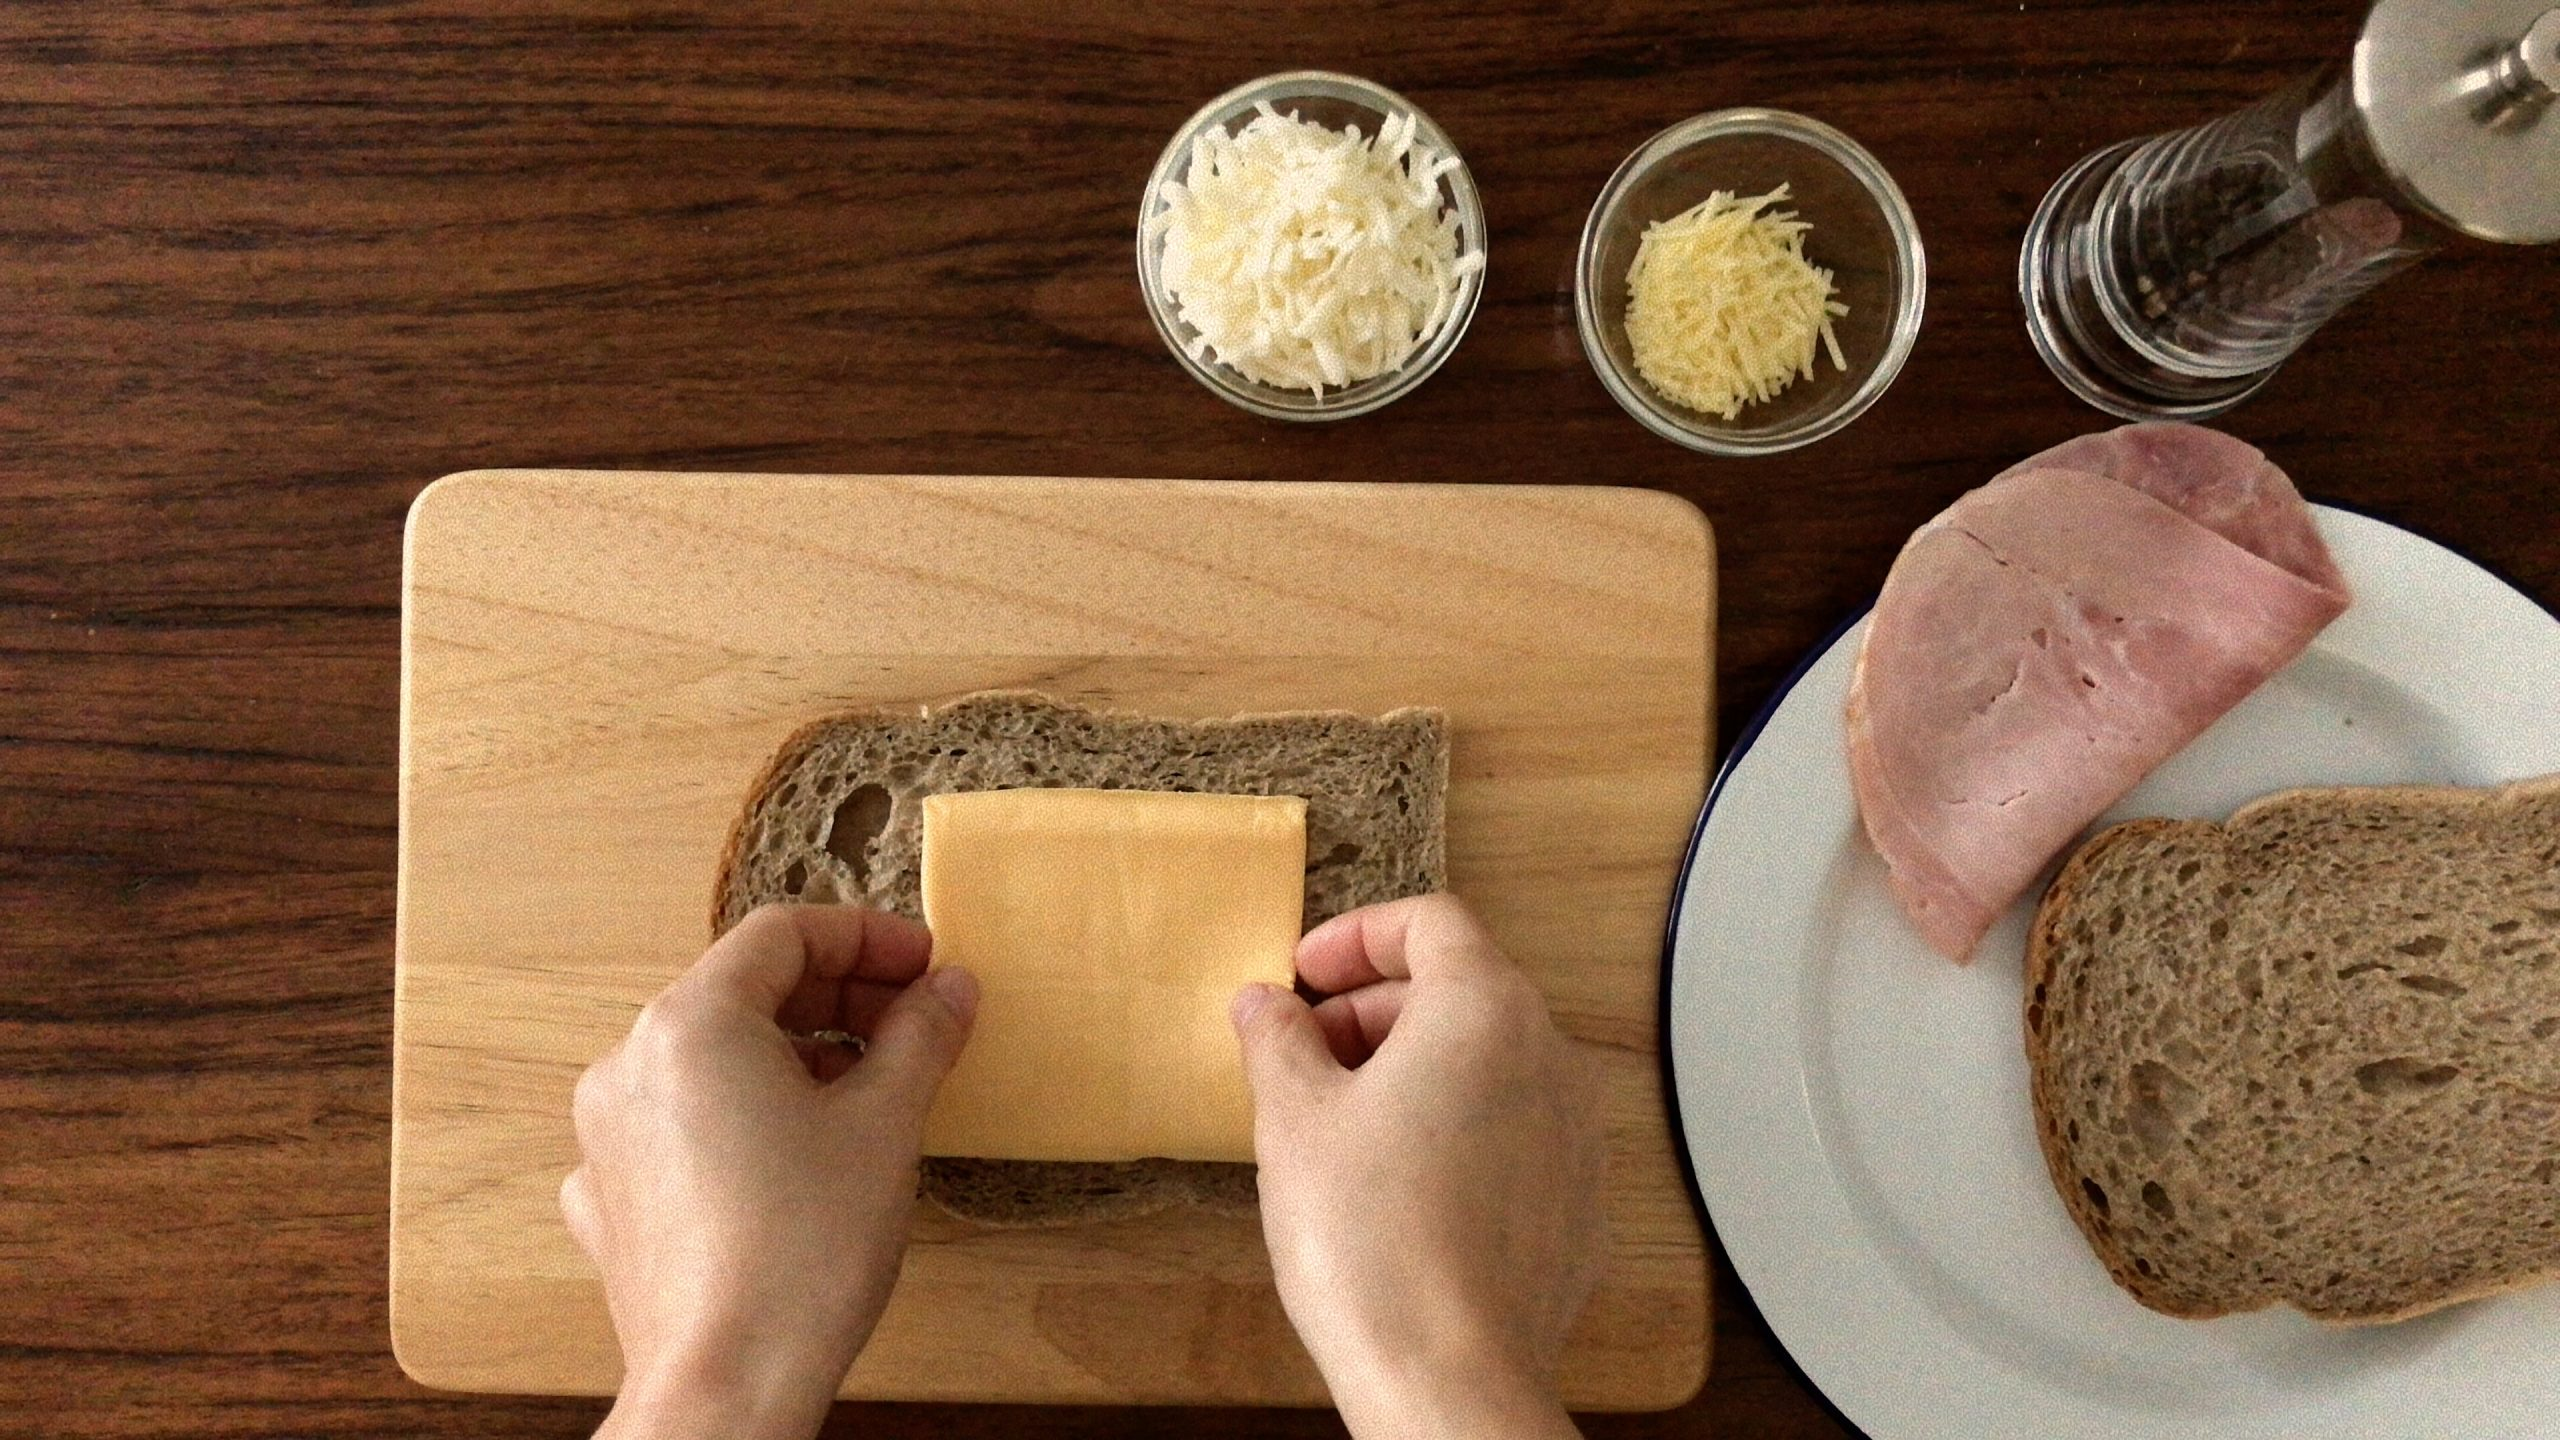 Putting a slice of Cheddar on a piece of brown break on a wooden board